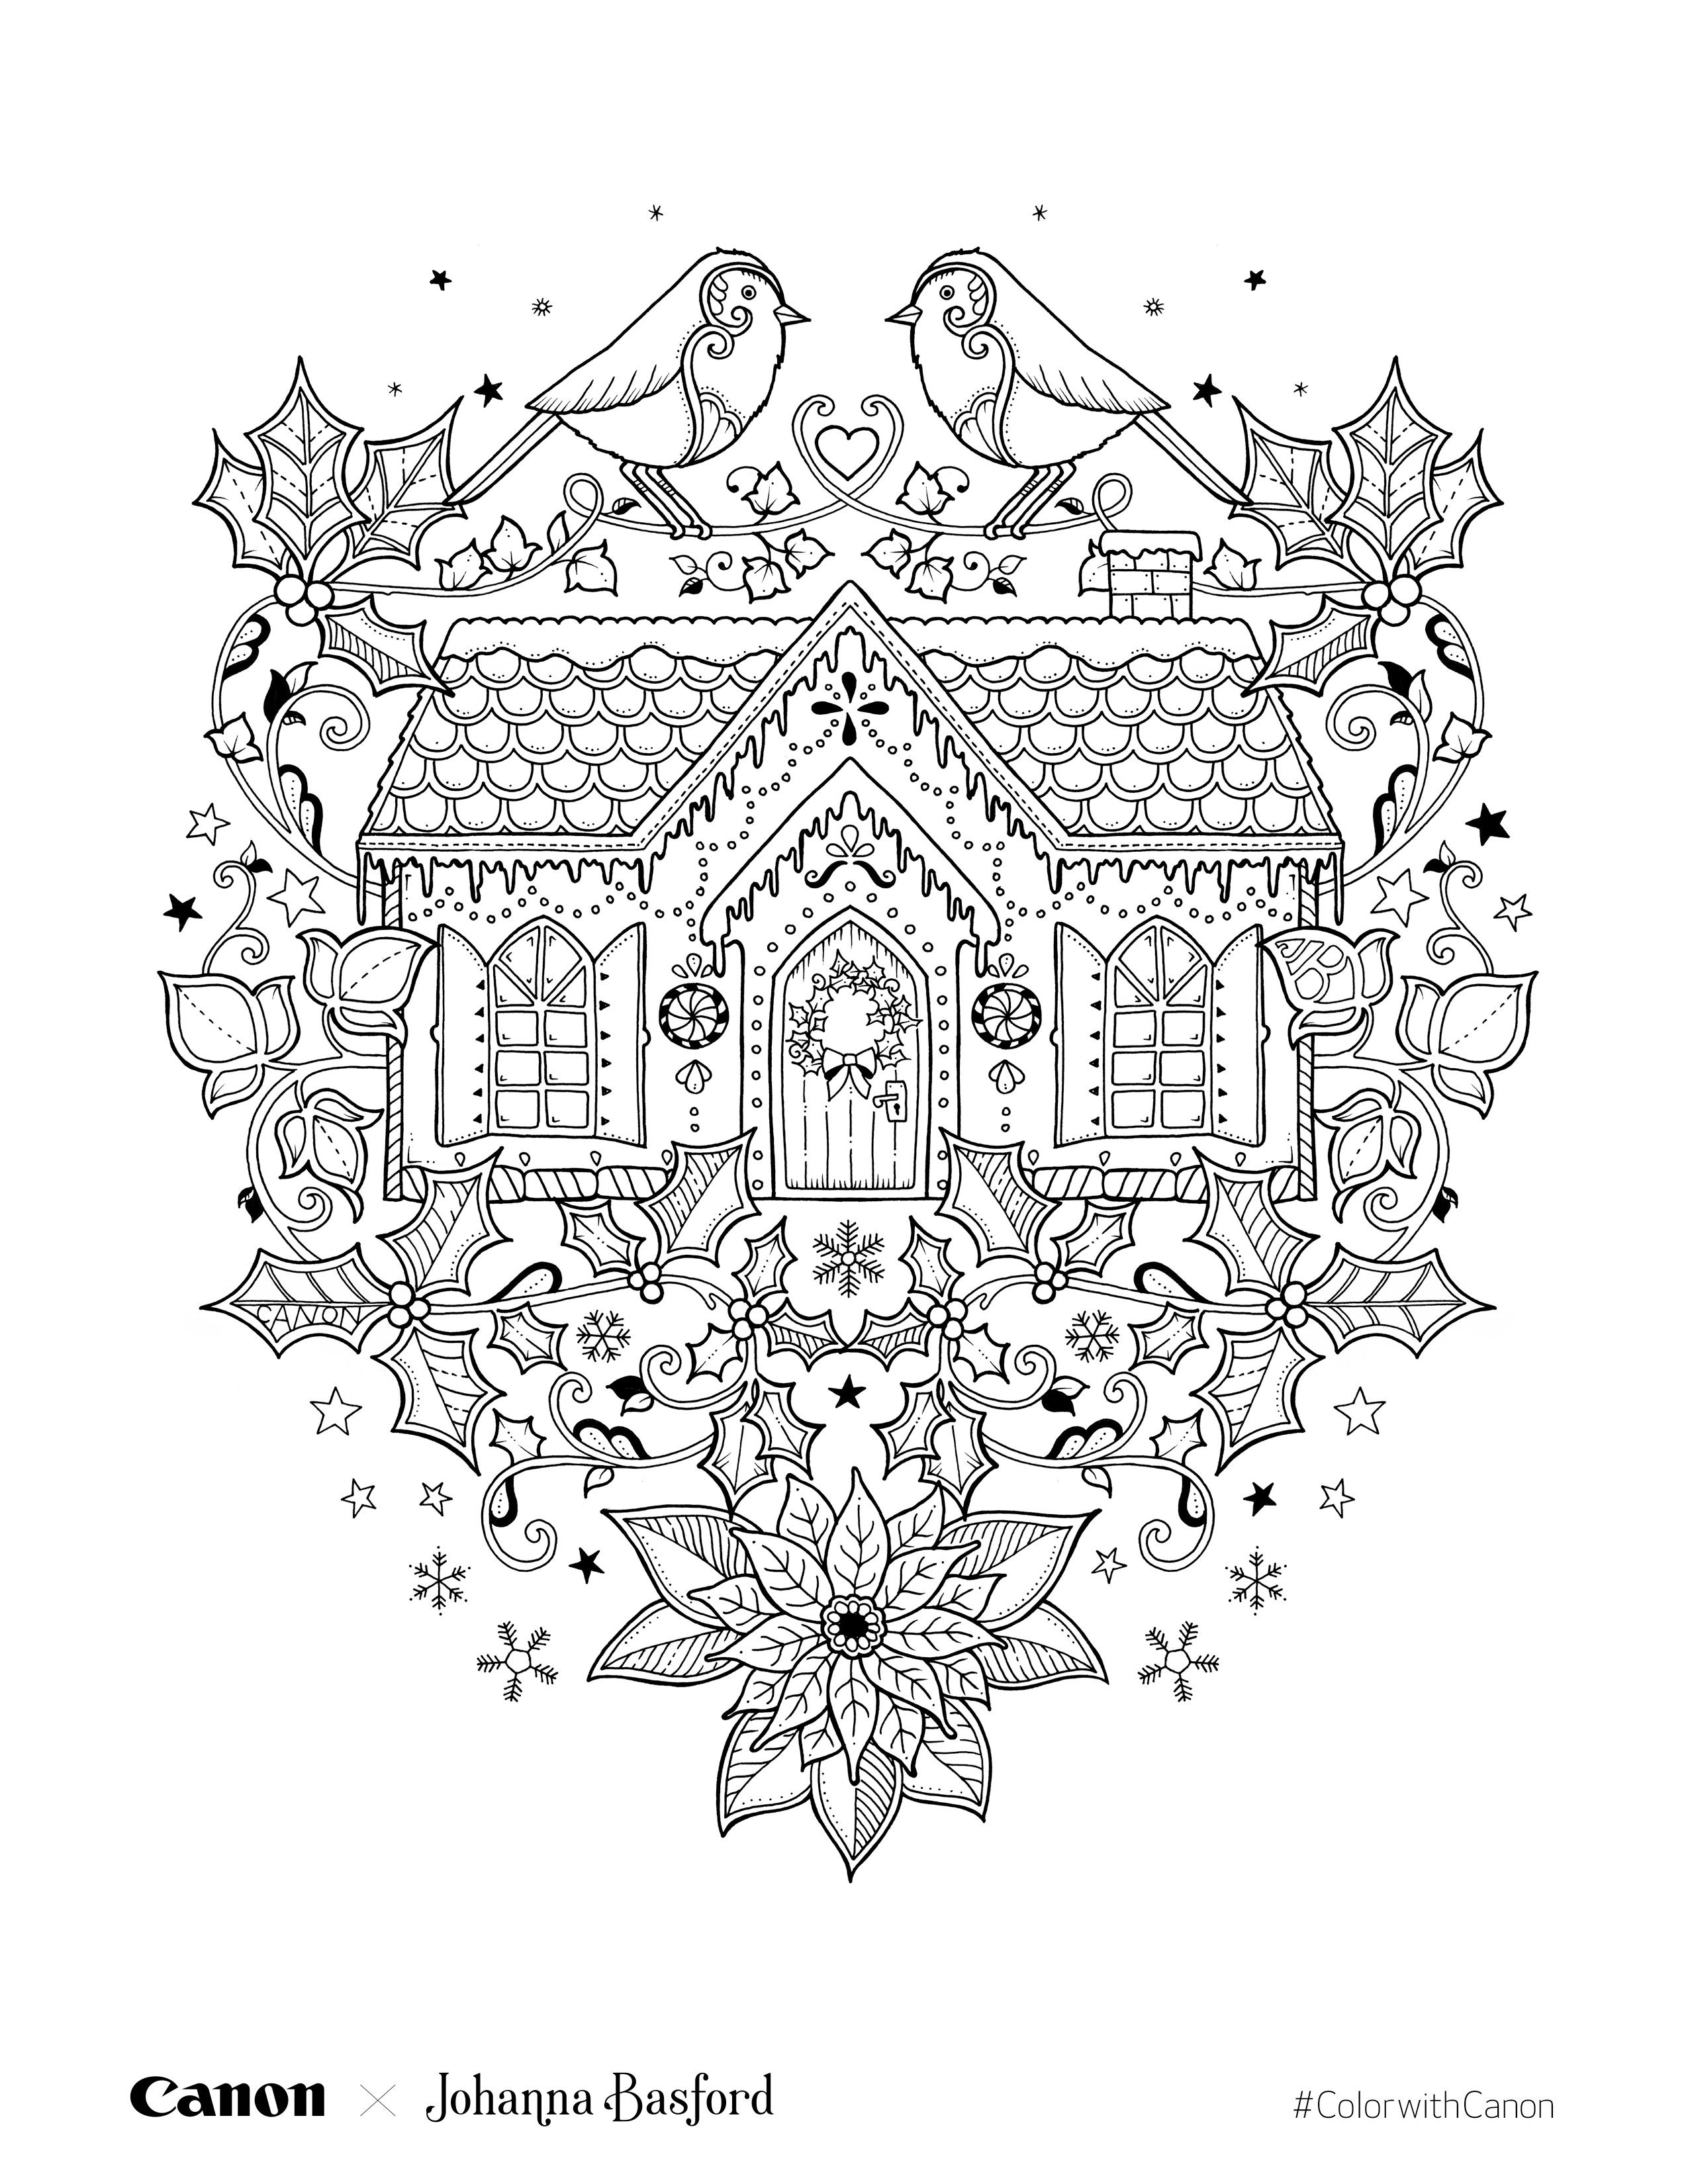 Johanna Basford Free Coloring Page From Canon